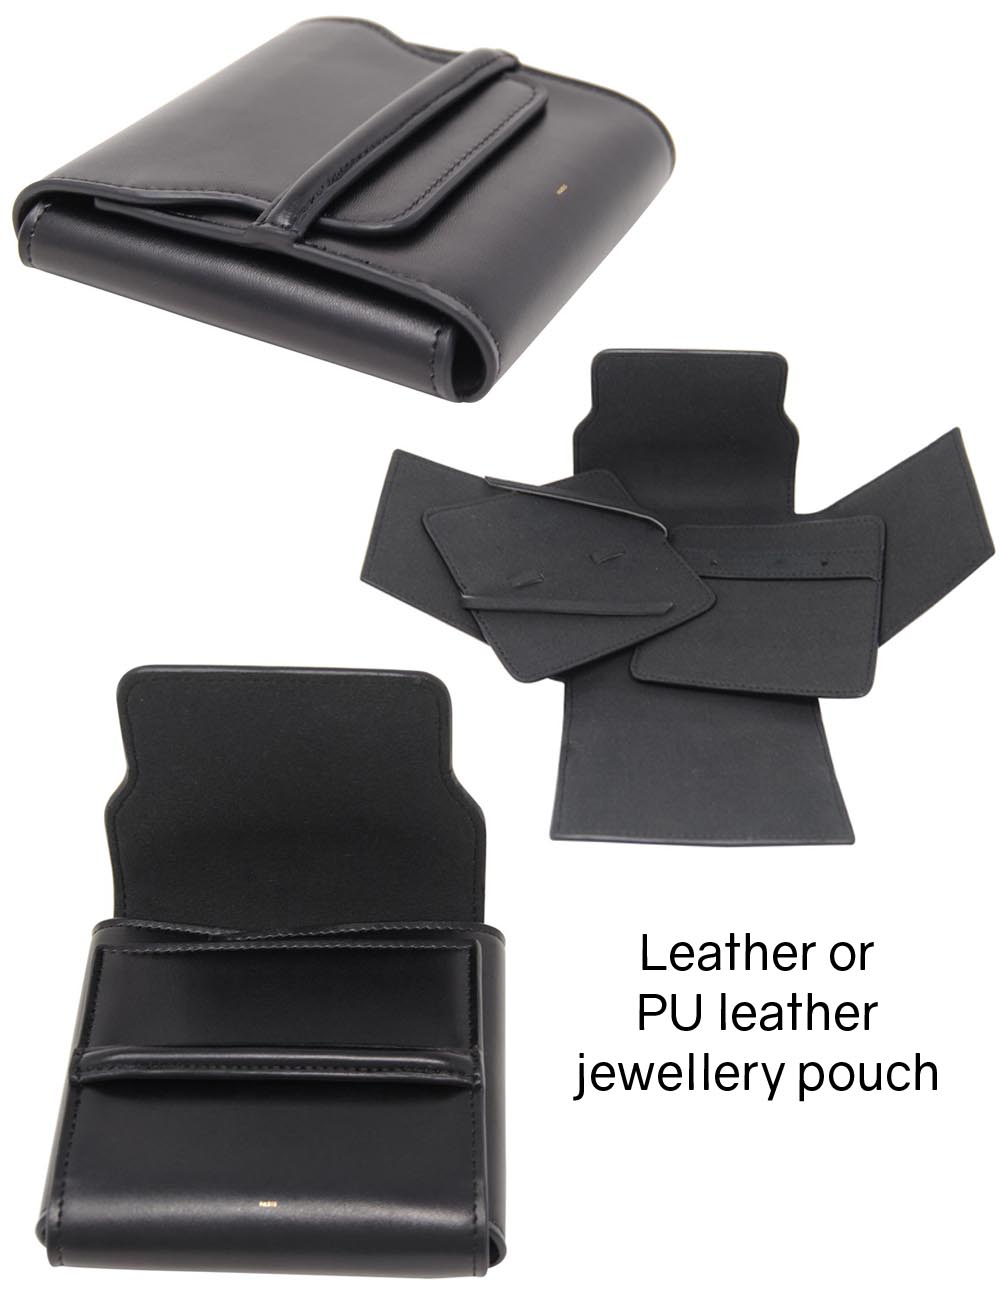 Leather or PU leather jewellery pouch